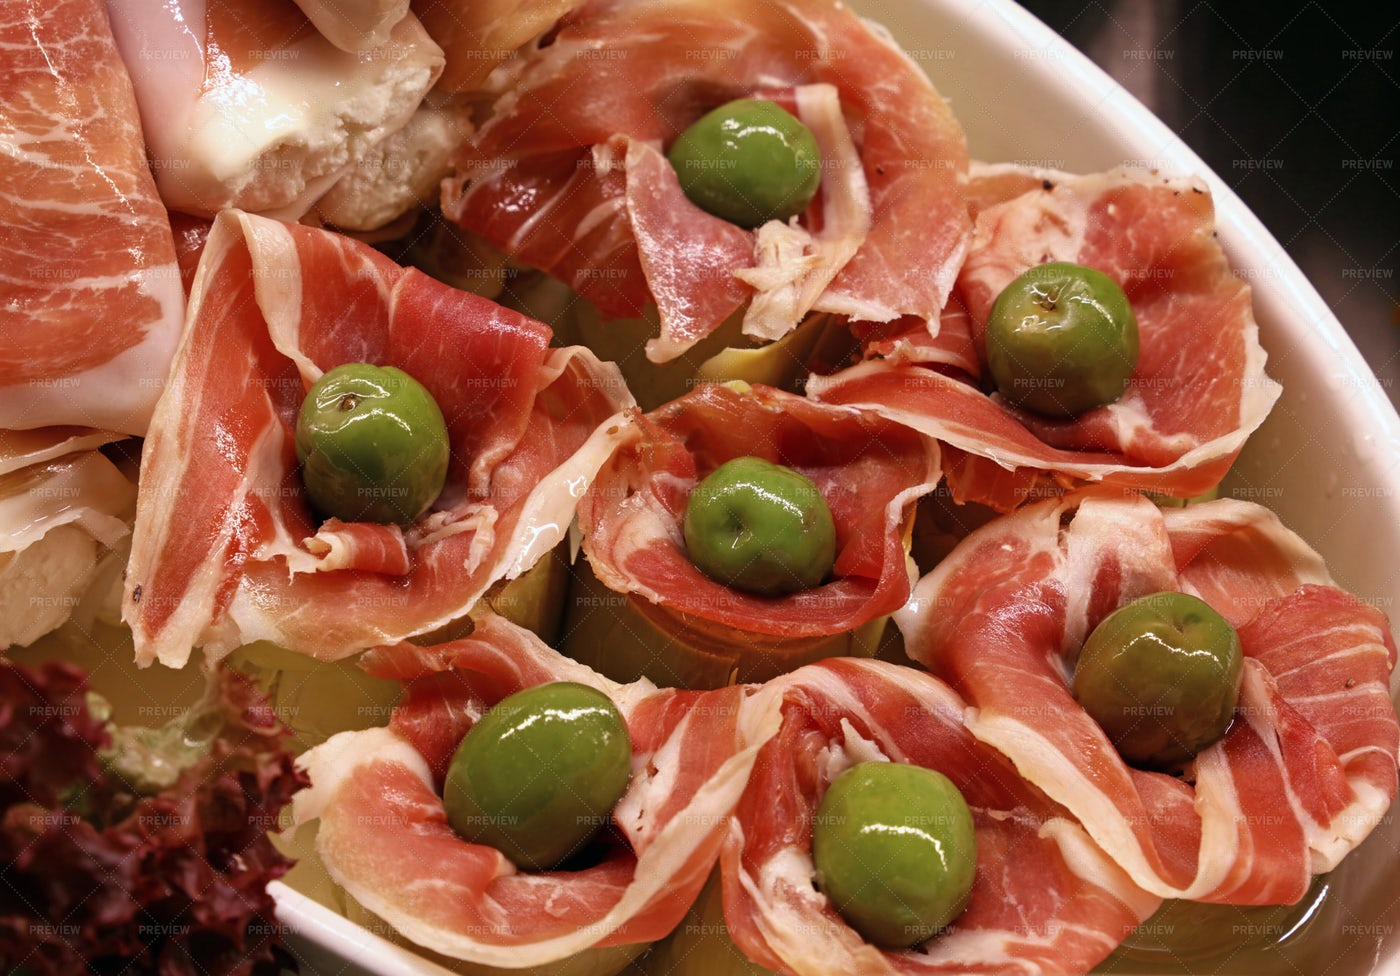 Artichoke With Jamon And Olives: Stock Photos